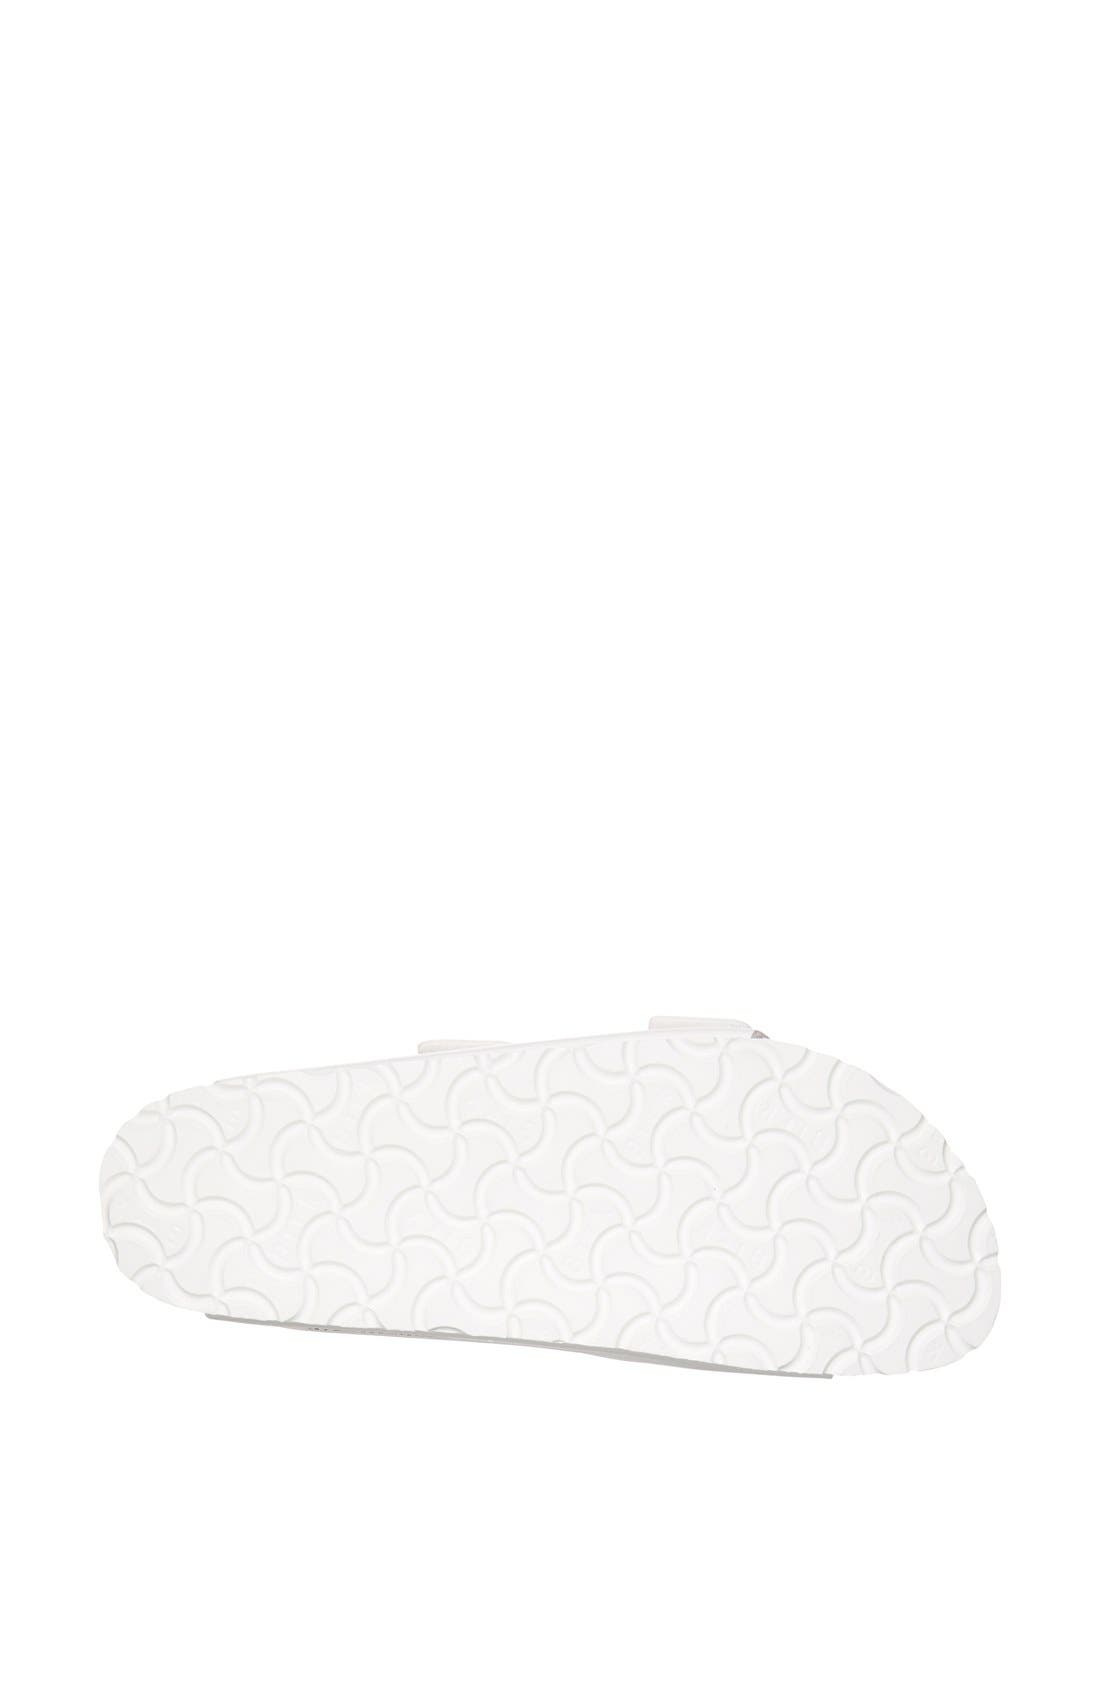 'Arizona' White Birko-Flor Sandal,                             Alternate thumbnail 7, color,                             WHITE SYNTHETIC LEATHER